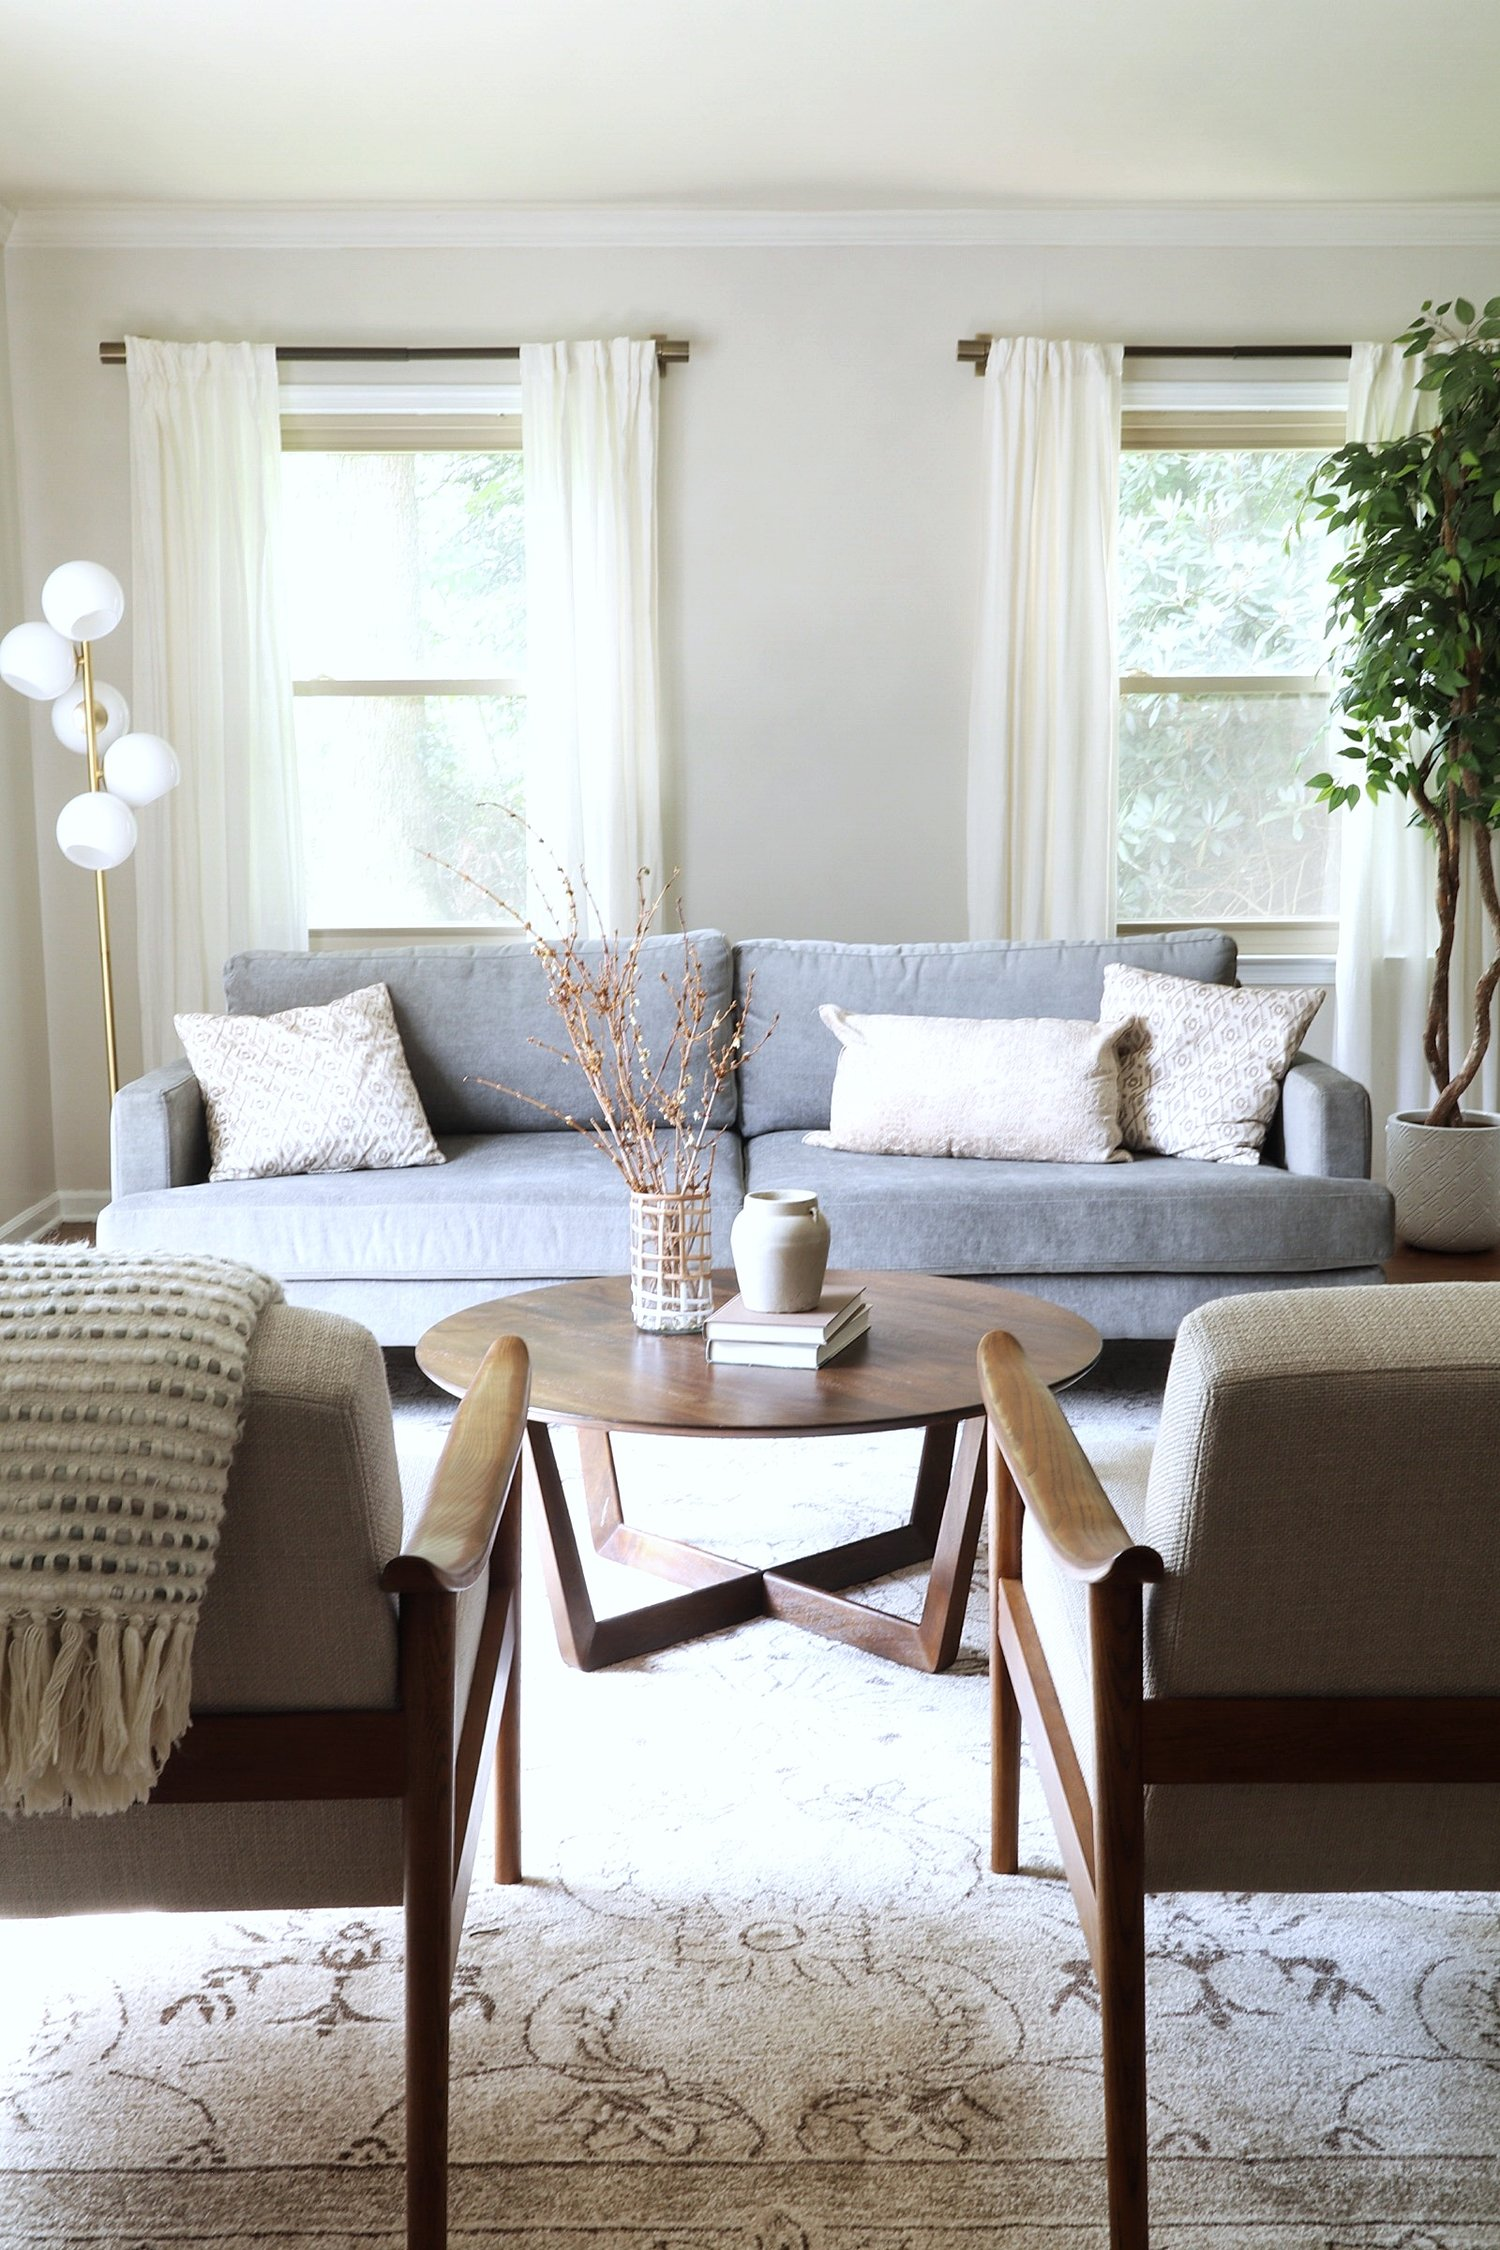 How To Layout Furniture In Your Narrow Living Room Or Around A Fireplace Meredith Lynn Designs